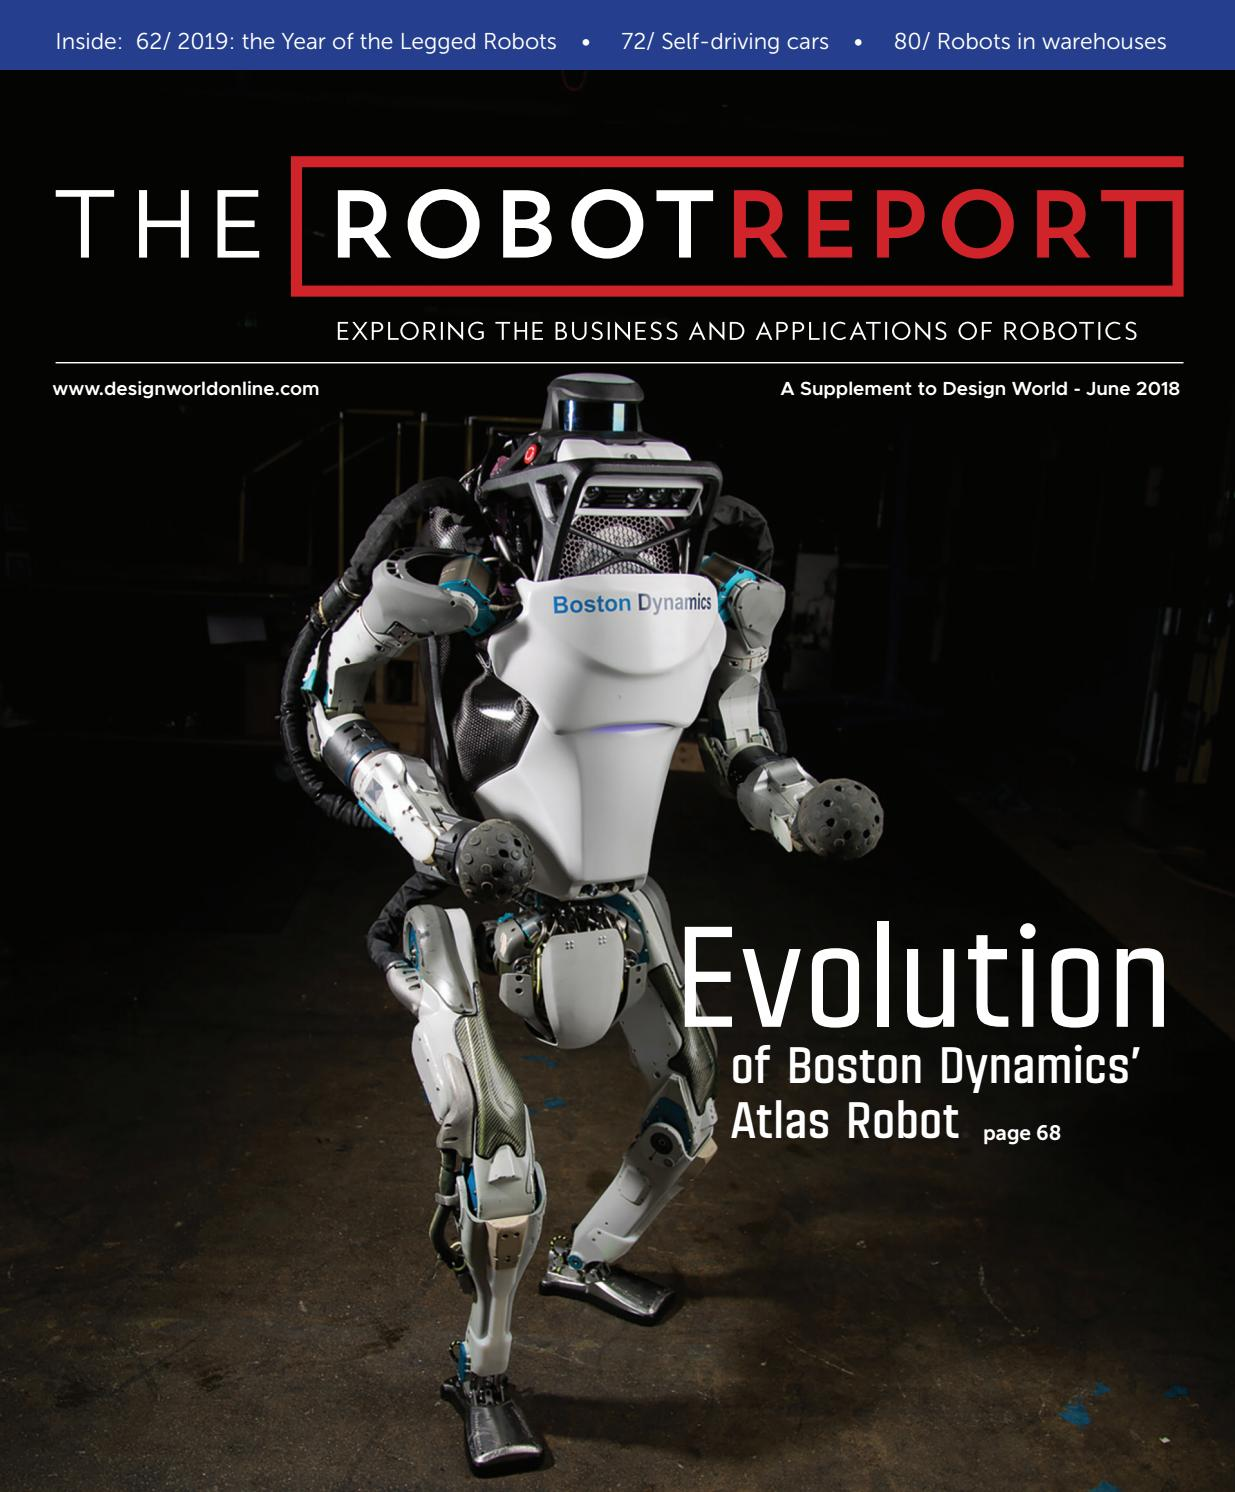 The Robot Report Design World June 2018 By Wtwh Media Llc Issuu Application 2 Home Networking Over Otherwise Unused Inhouse Coax